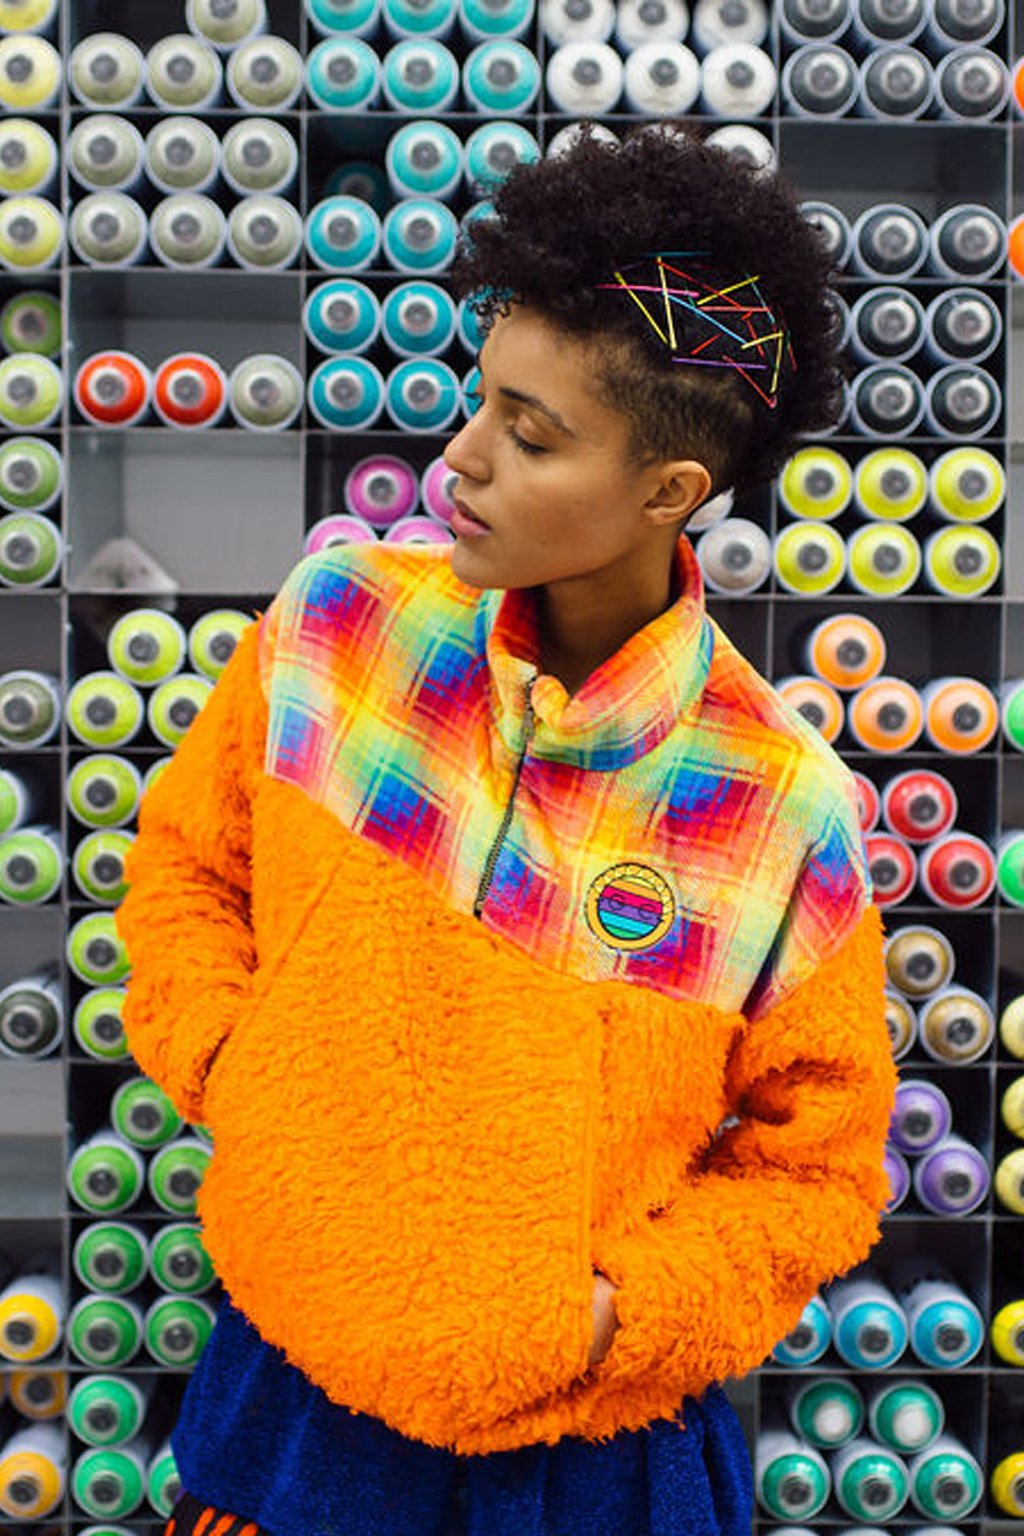 Half-Zip Pullover in Multi Fleece and Orange Teddy. - Jumper - Megan Crook